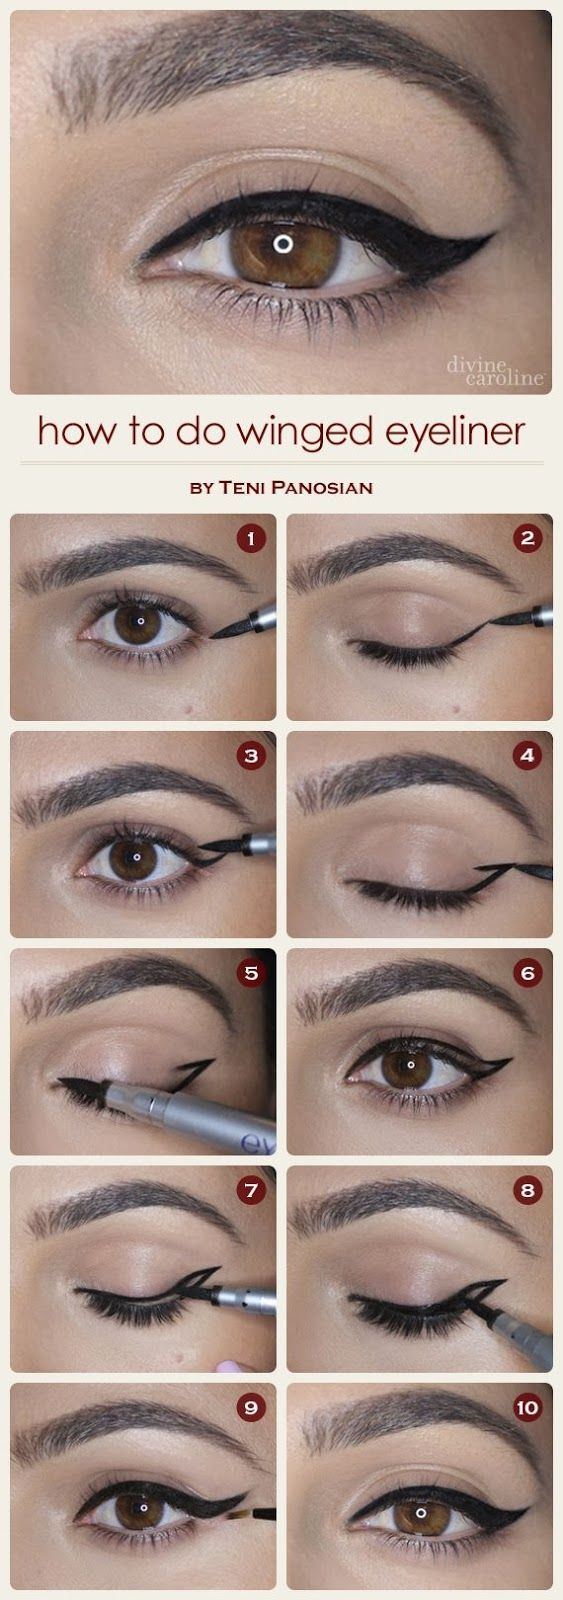 6 Ways to Get the Perfect Cat-Eye for Your Eye Shape - Page 3 of 7 - Trend To Wear